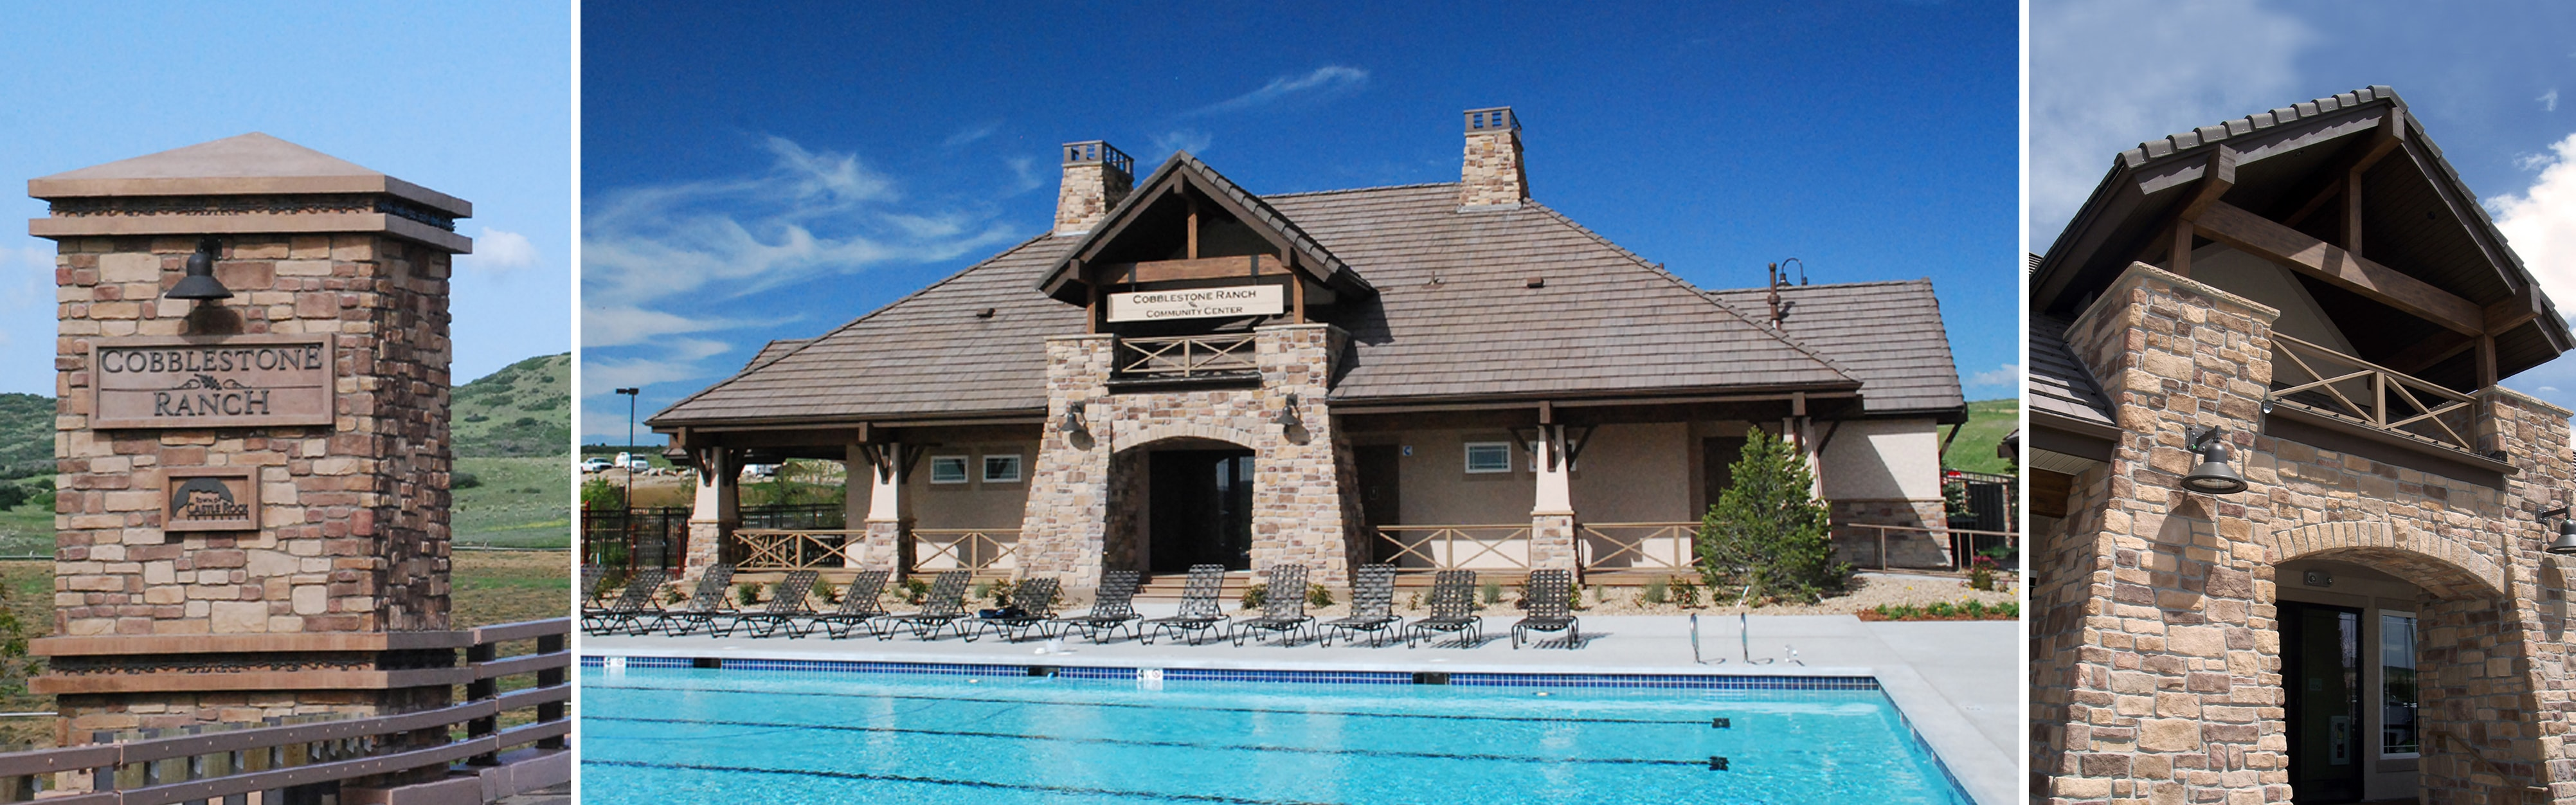 Pool House Architecture Design in Denver, Colorado on pool house cabana designs, patio covered porch designs, pool house bathroom designs, pool house kitchen designs,